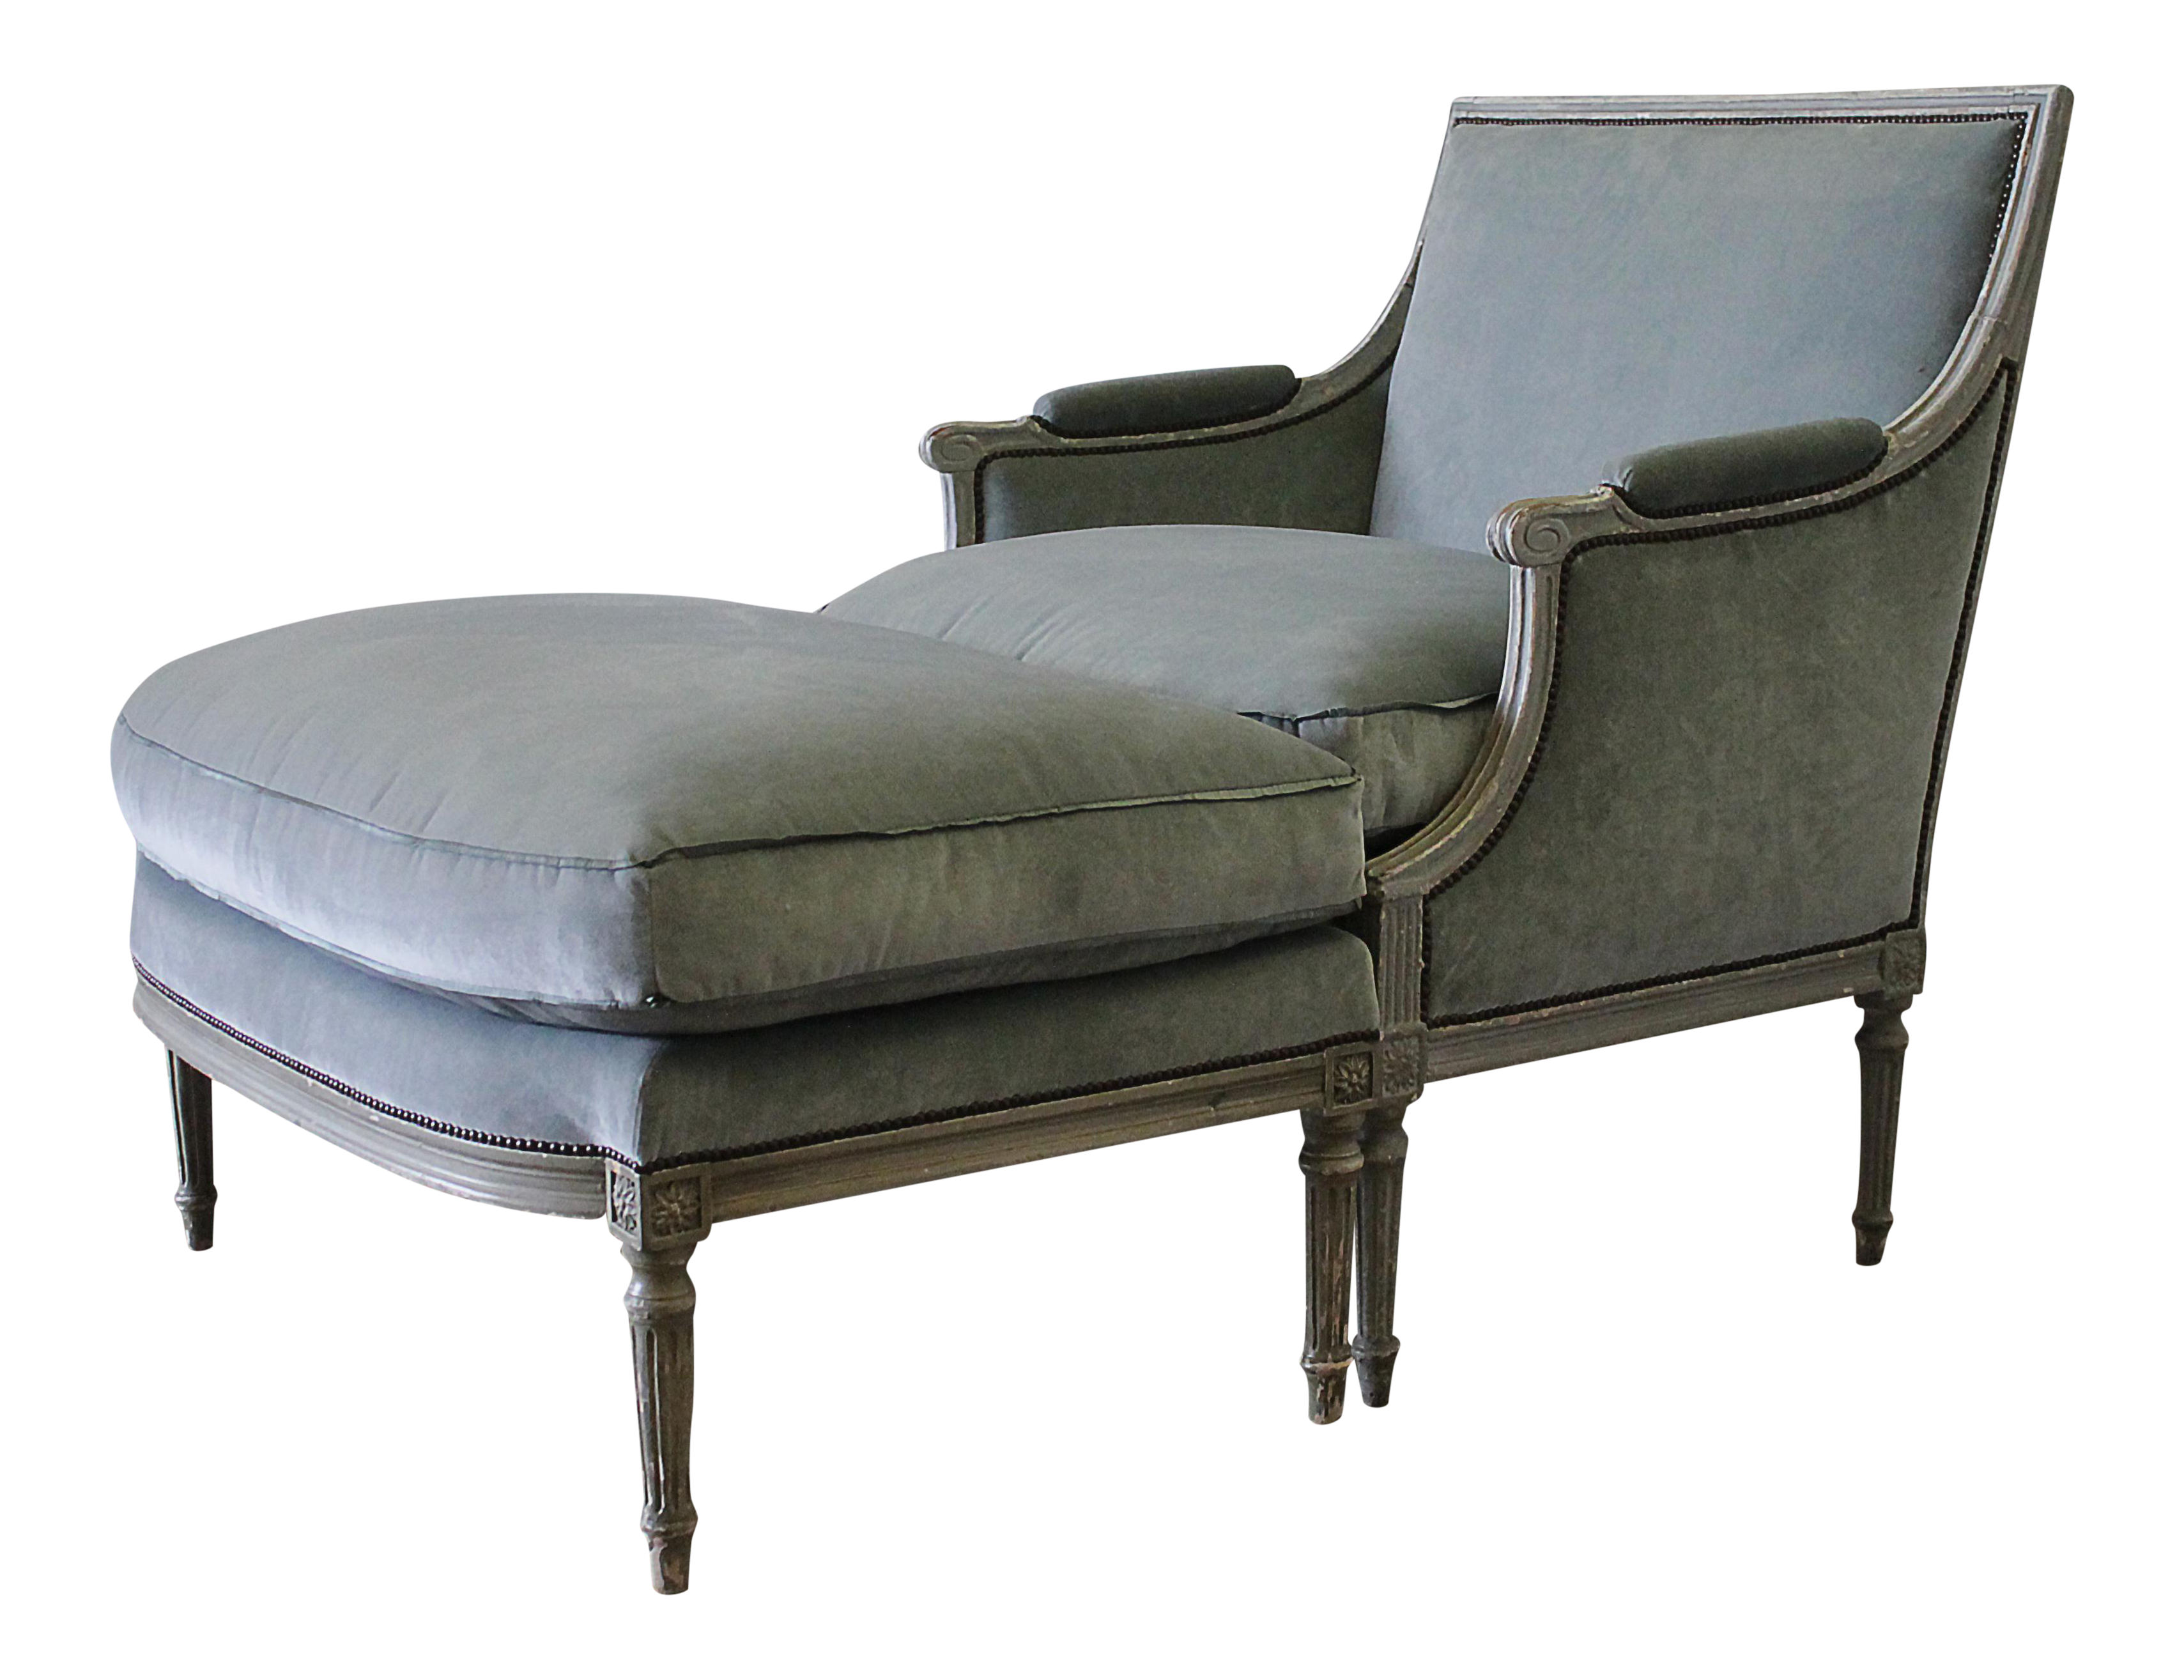 upholstered louis xvi chair ottoman chaise chairish. Black Bedroom Furniture Sets. Home Design Ideas